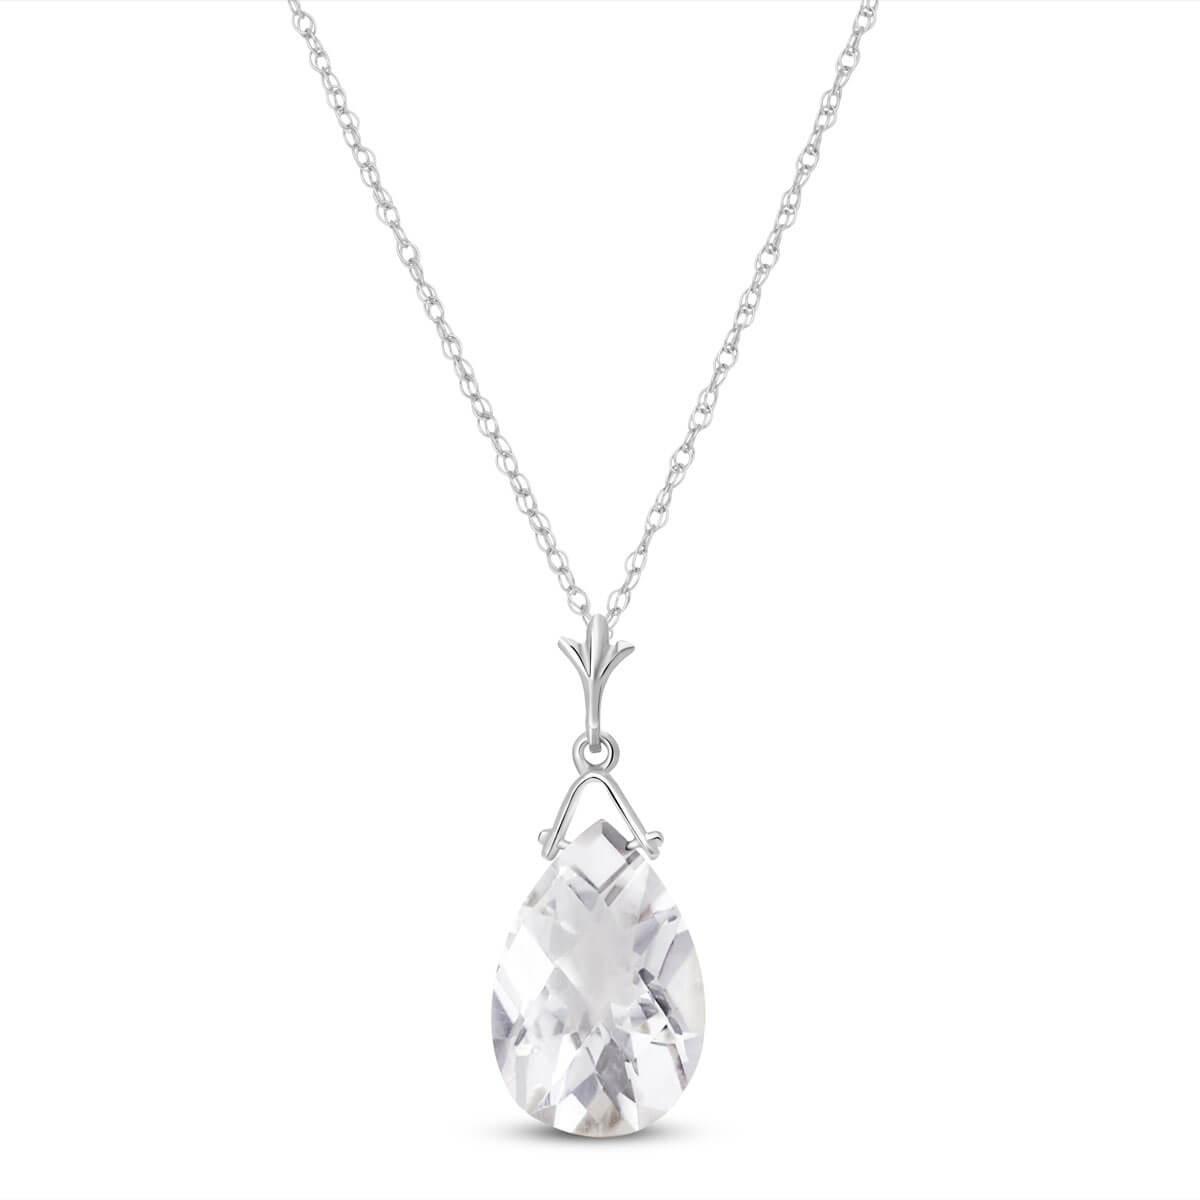 White Topaz Droplet Pendant Necklace 5.1 ct in 9ct White Gold